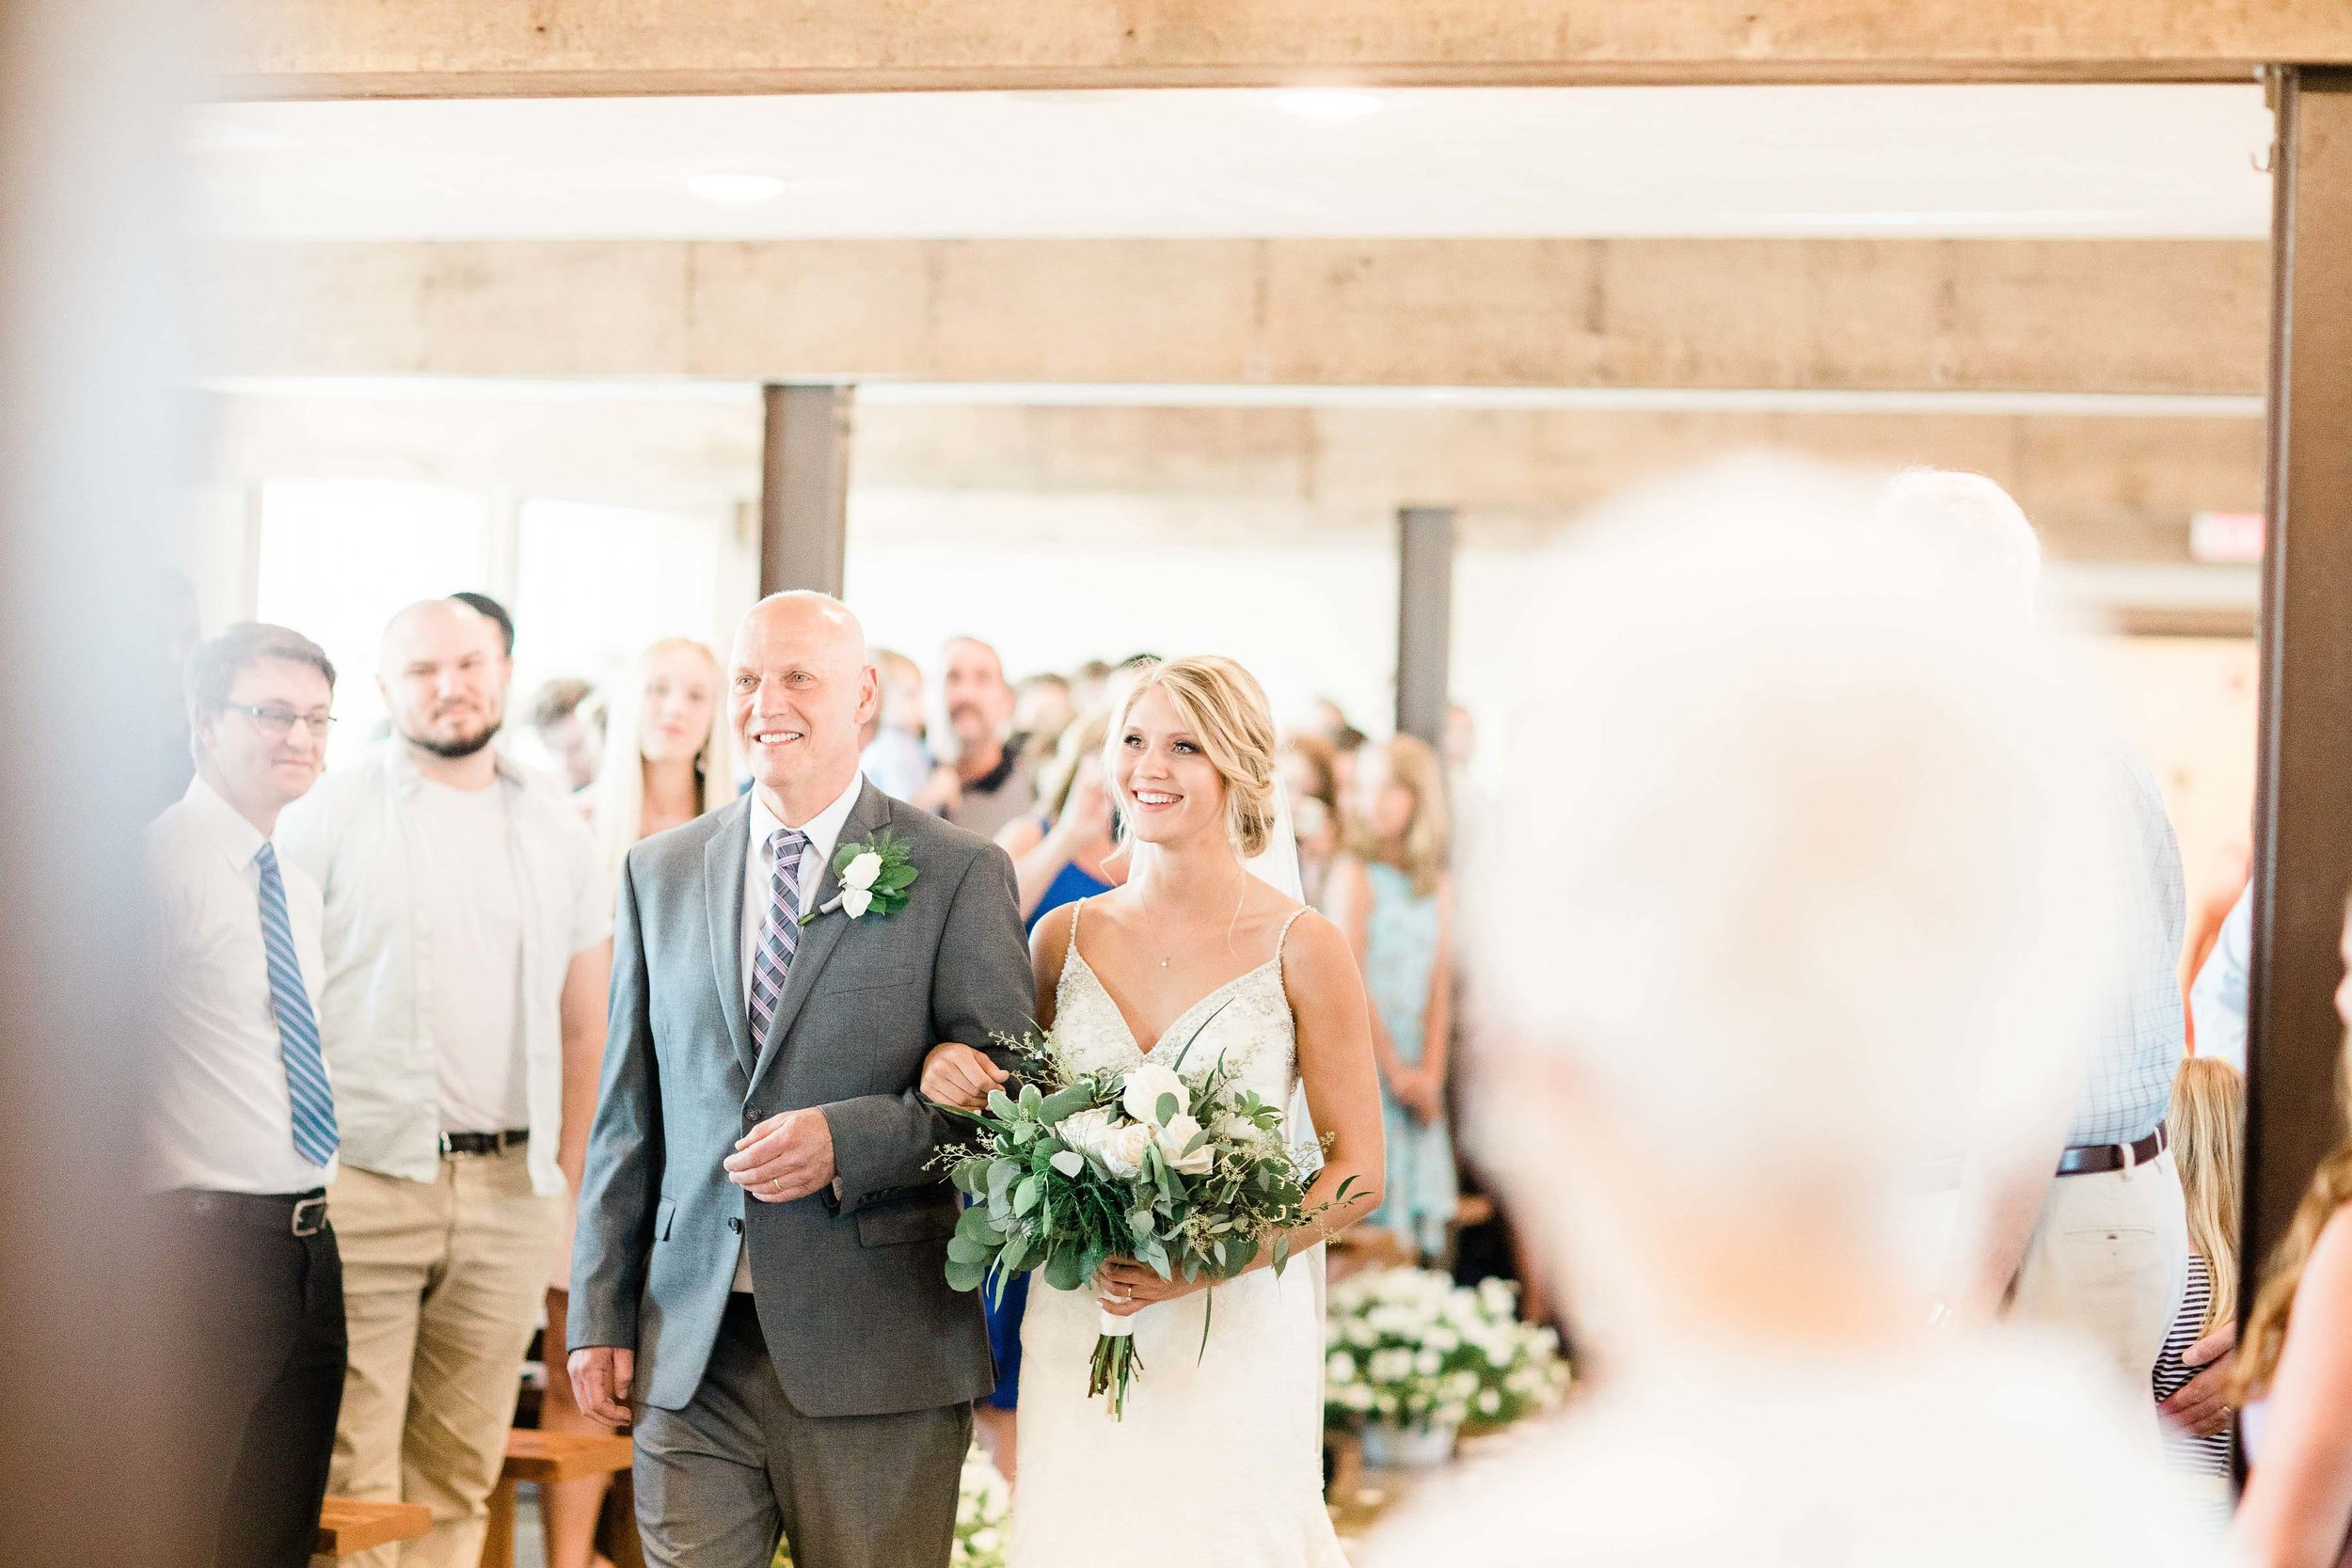 pickwick place wedding bucyrus ohio-3.jpg